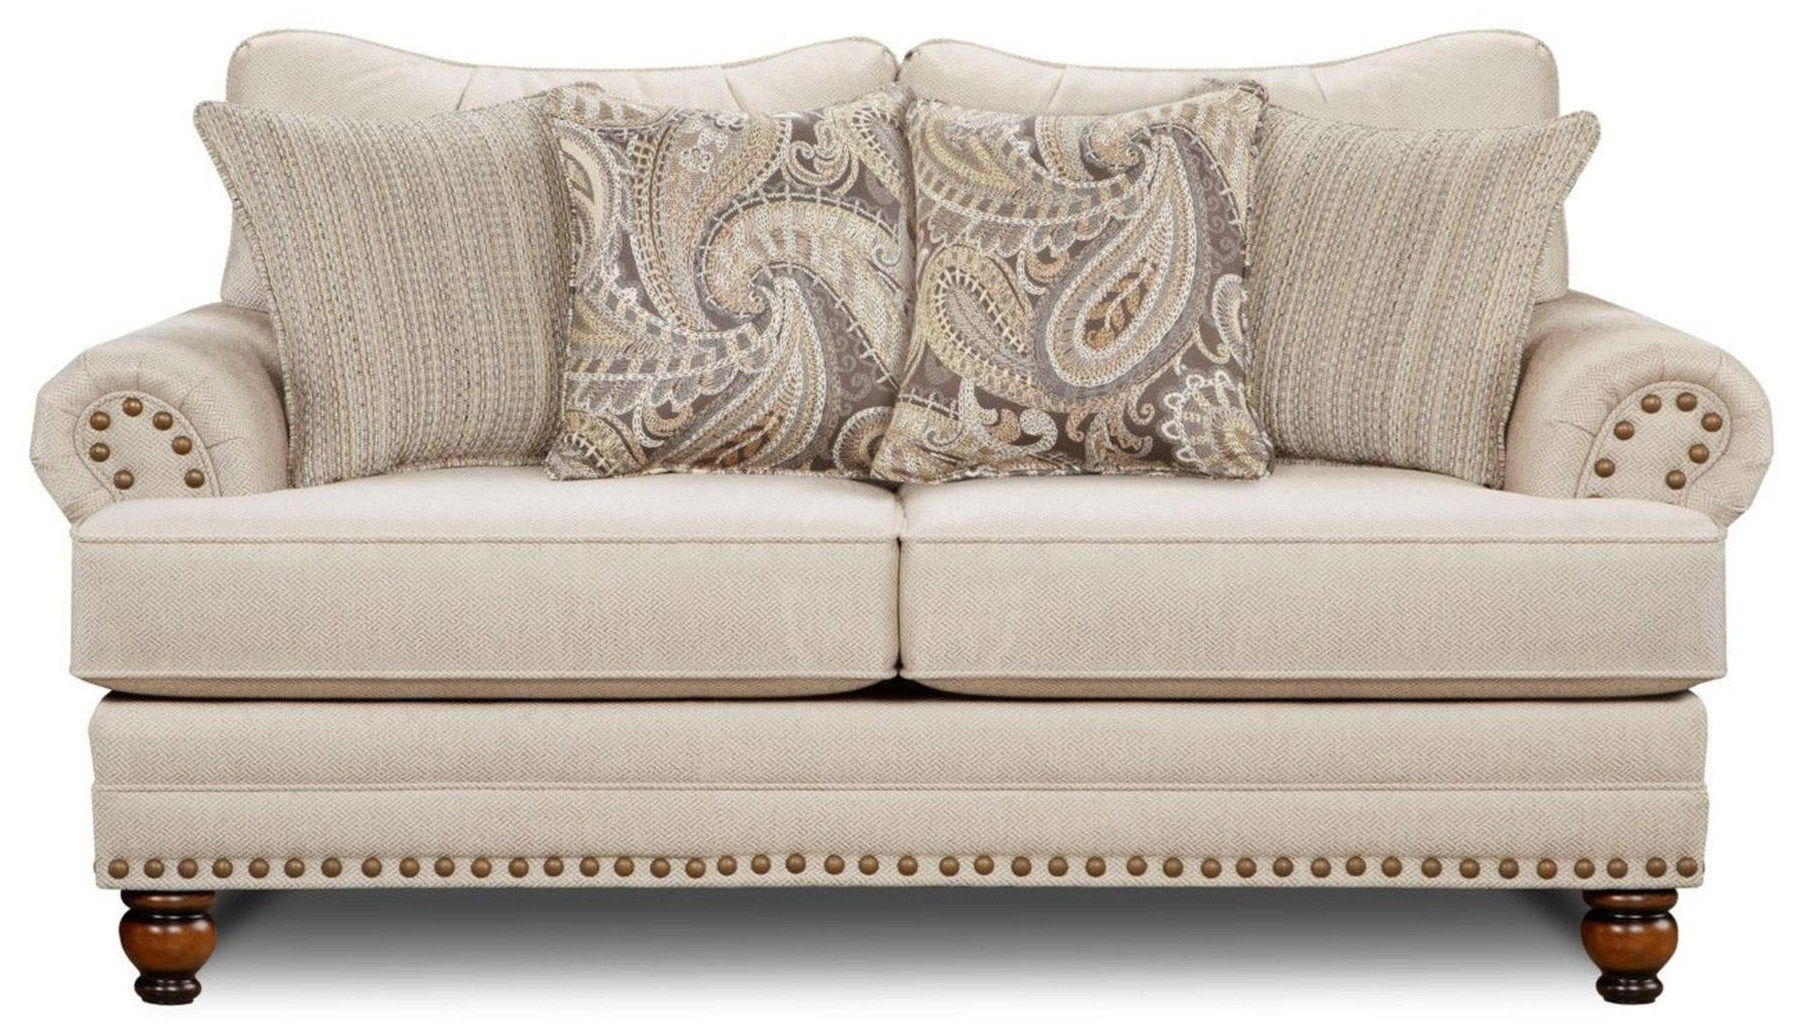 Fusion Furniture 2820 2821 Carys Doe Cary S Doe Traditional Loveseat With Nailhead Trim Great American Home Store Love Fusion Furniture Love Seat Furniture